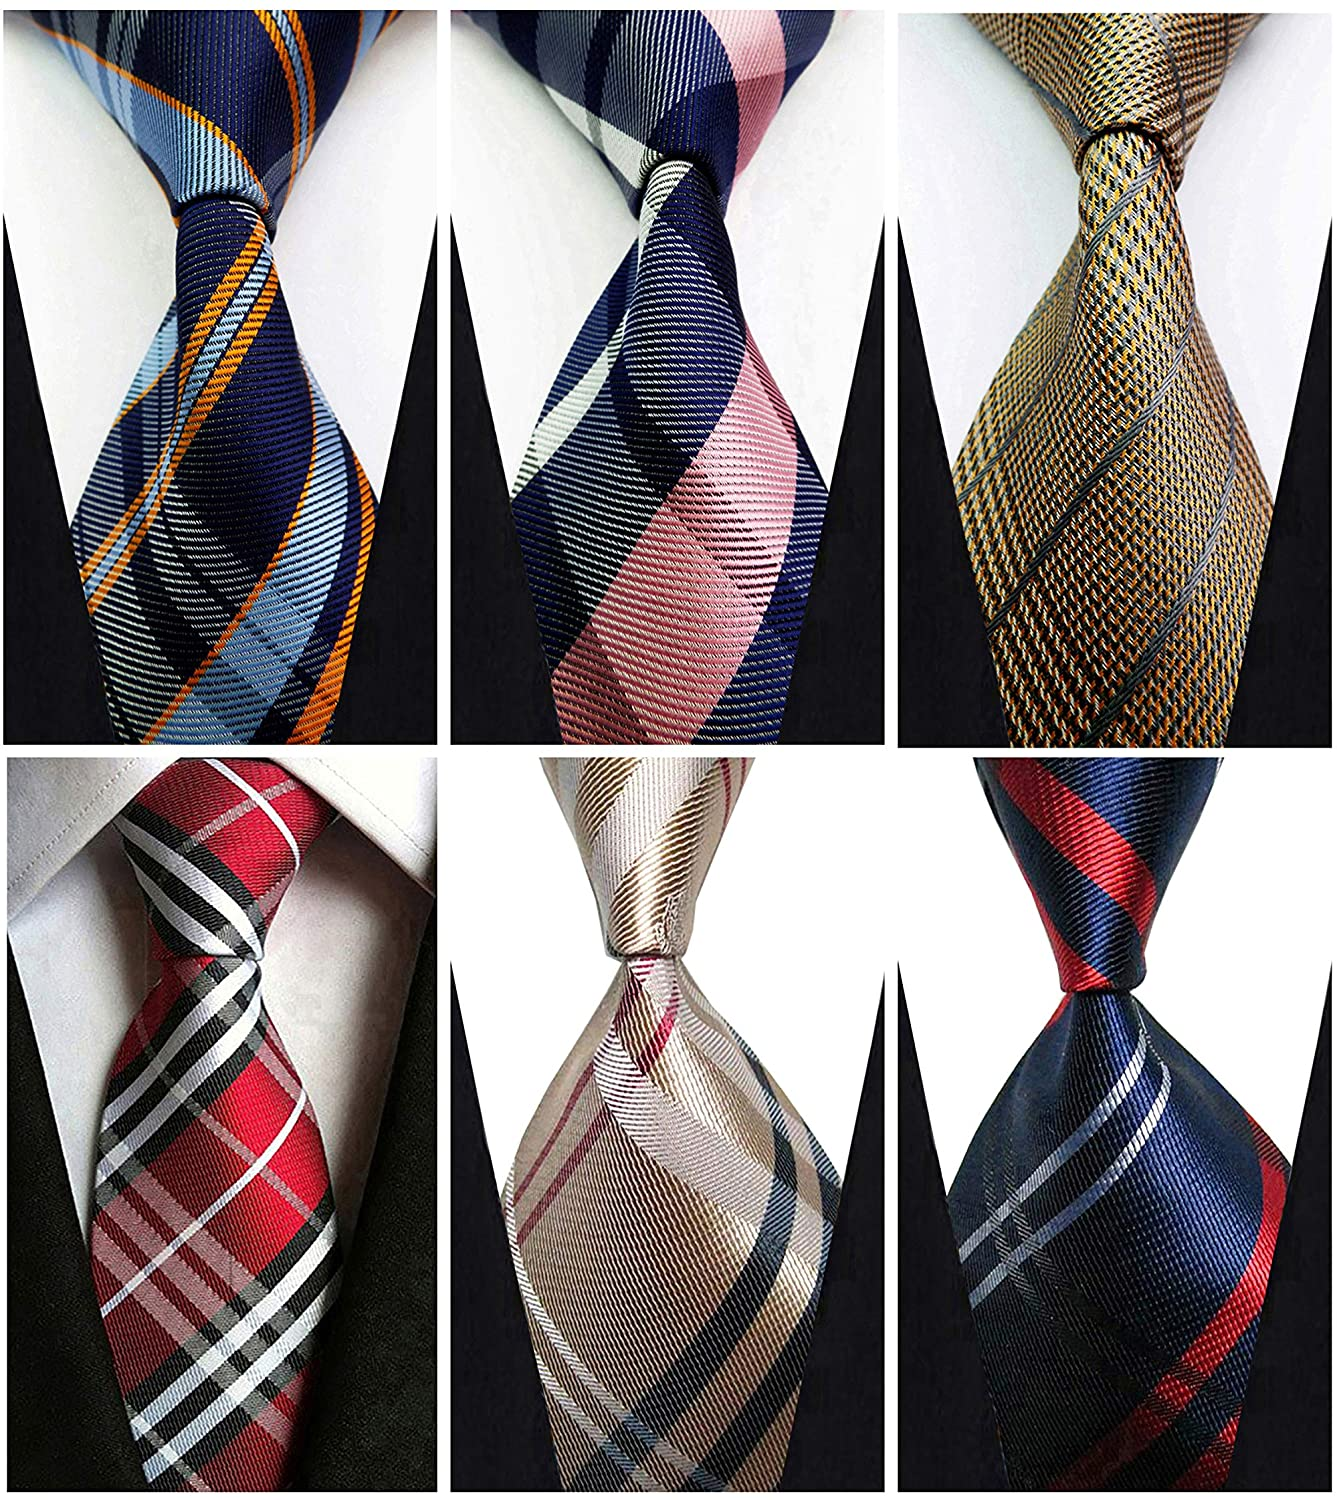 Set of 6 w3dayup mens Classic Tie Necktie Woven JACQUARD Neck Ties For Men